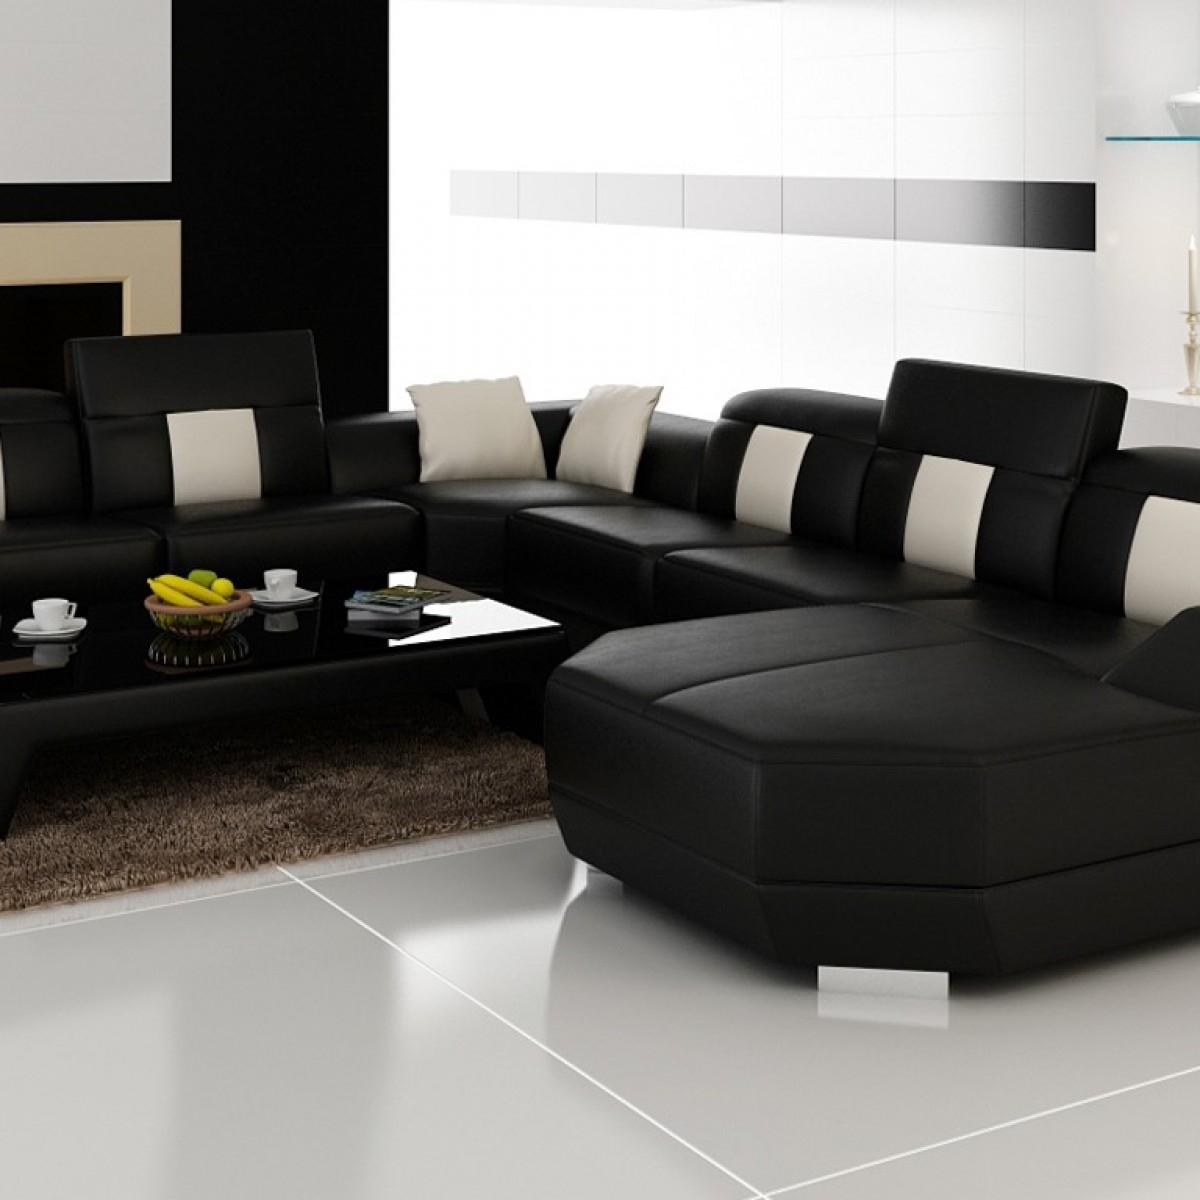 Furniture : Sectional Sofa Nz Sectional Sofa $200 Sectional Sofa For Nz Sectional Sofas (Image 7 of 10)